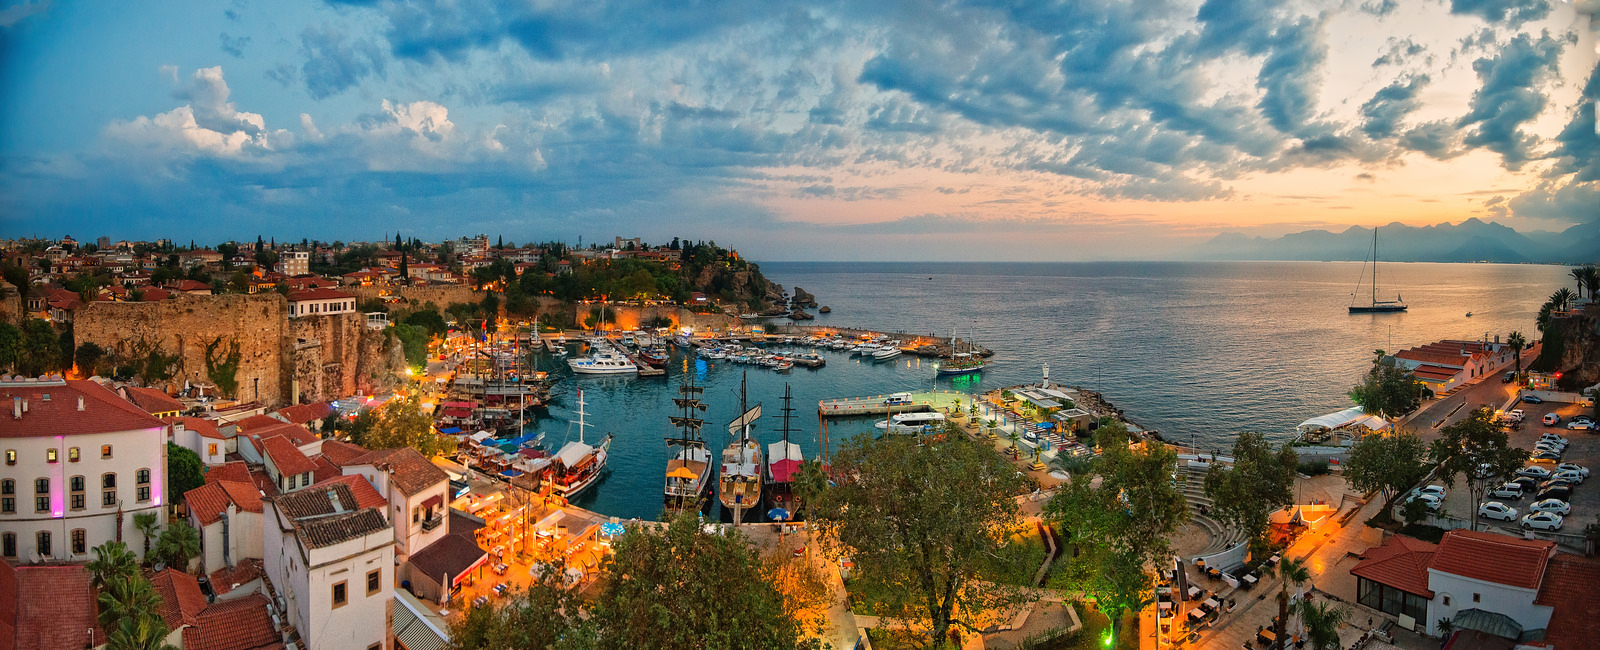 Antalya,Light Tours Vacation Activities, Holiday Locations,Antalya 45